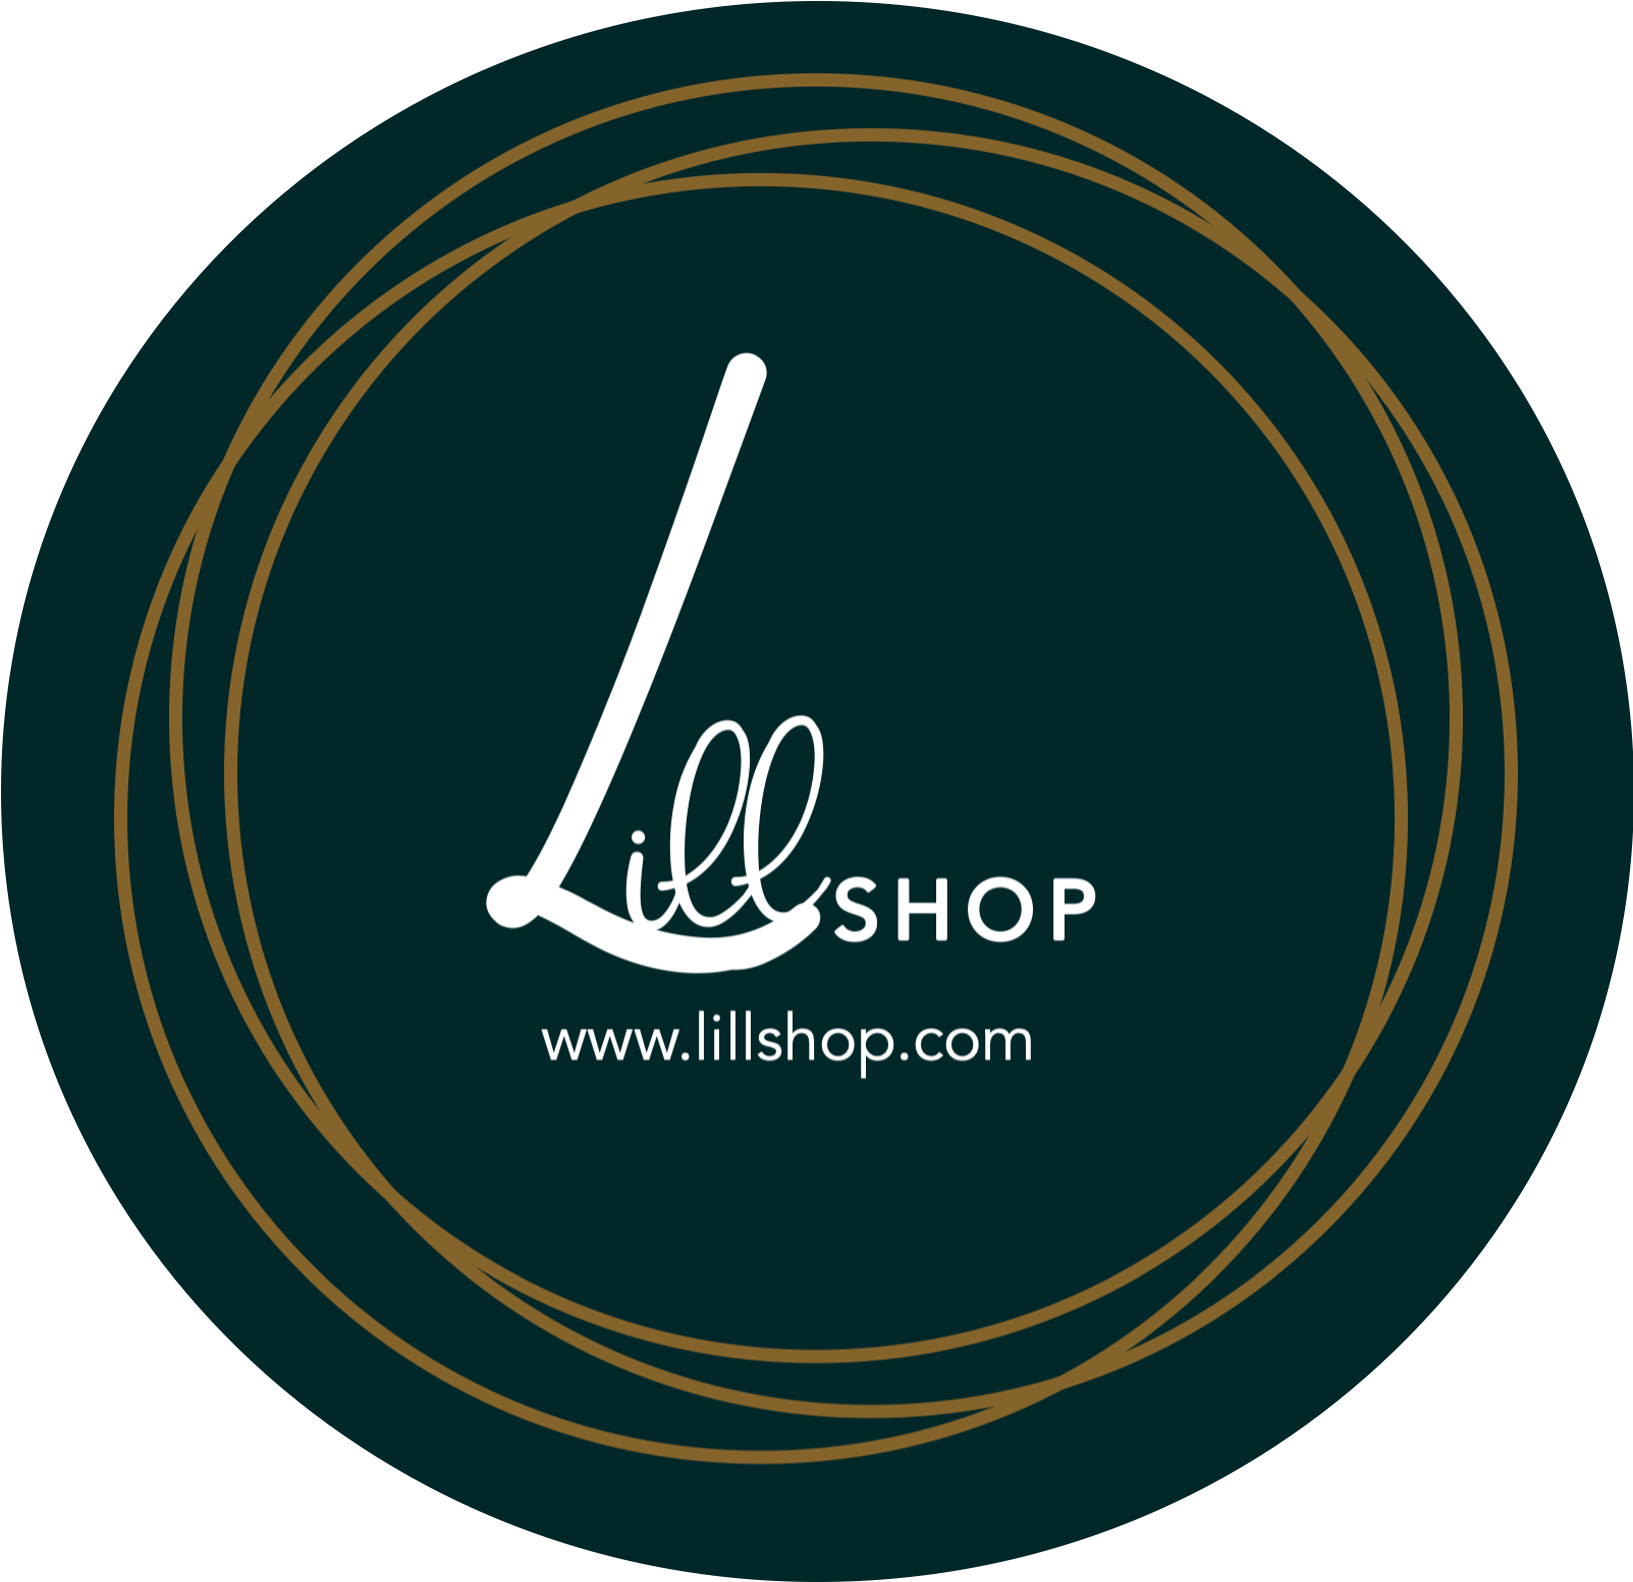 Lillshop-HouseholdGoods-Novelty-MVM-Malta